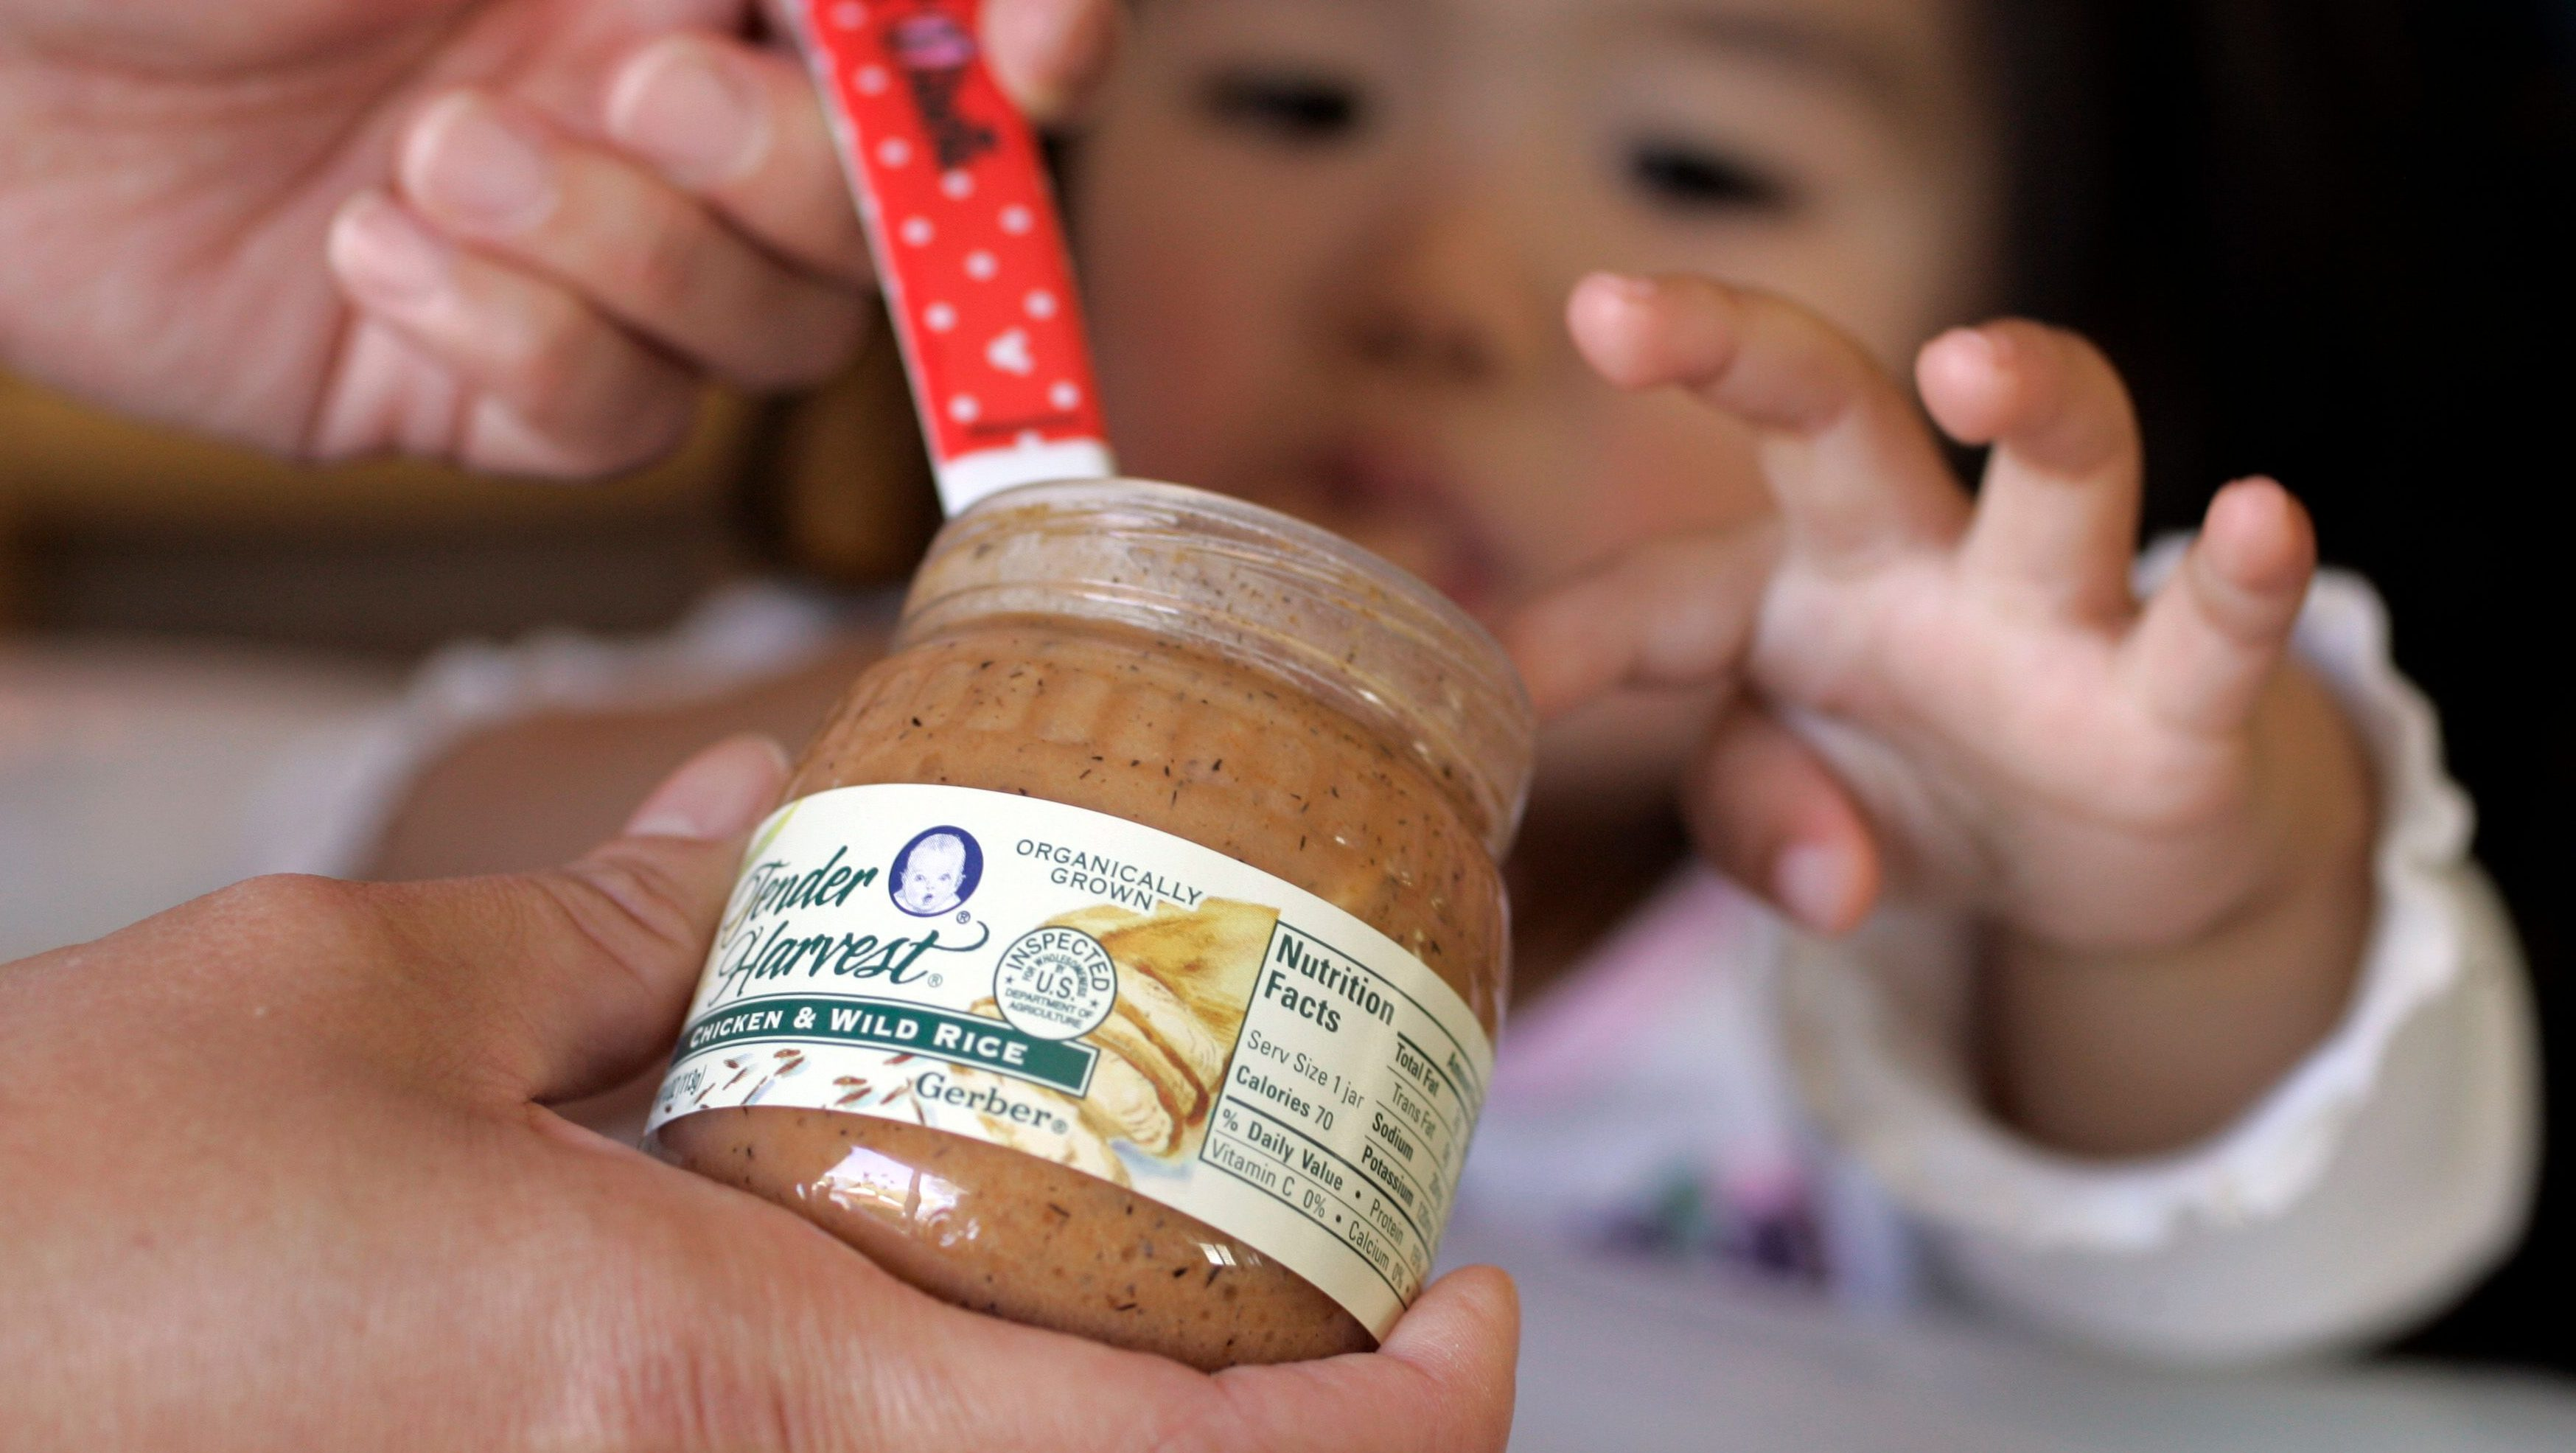 One-year-old Rachel Ho is feed Gerber baby food in Palo Alto, Calif., Thursday, April 12, 2007.